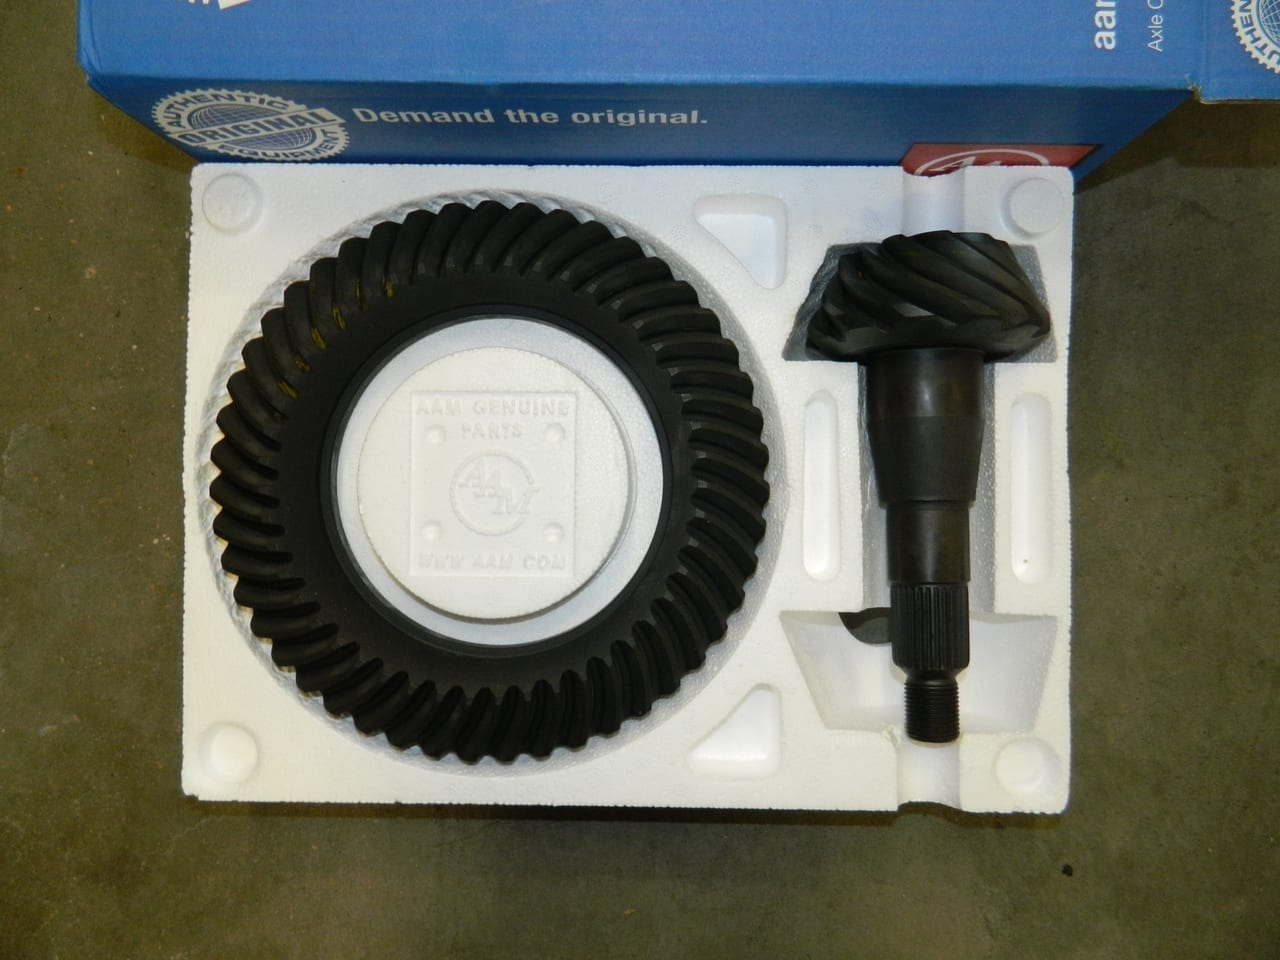 Genuine AAM Dodge Chrysler 9.25 3:92 Gear Set Ring & Pinion C9.25-392